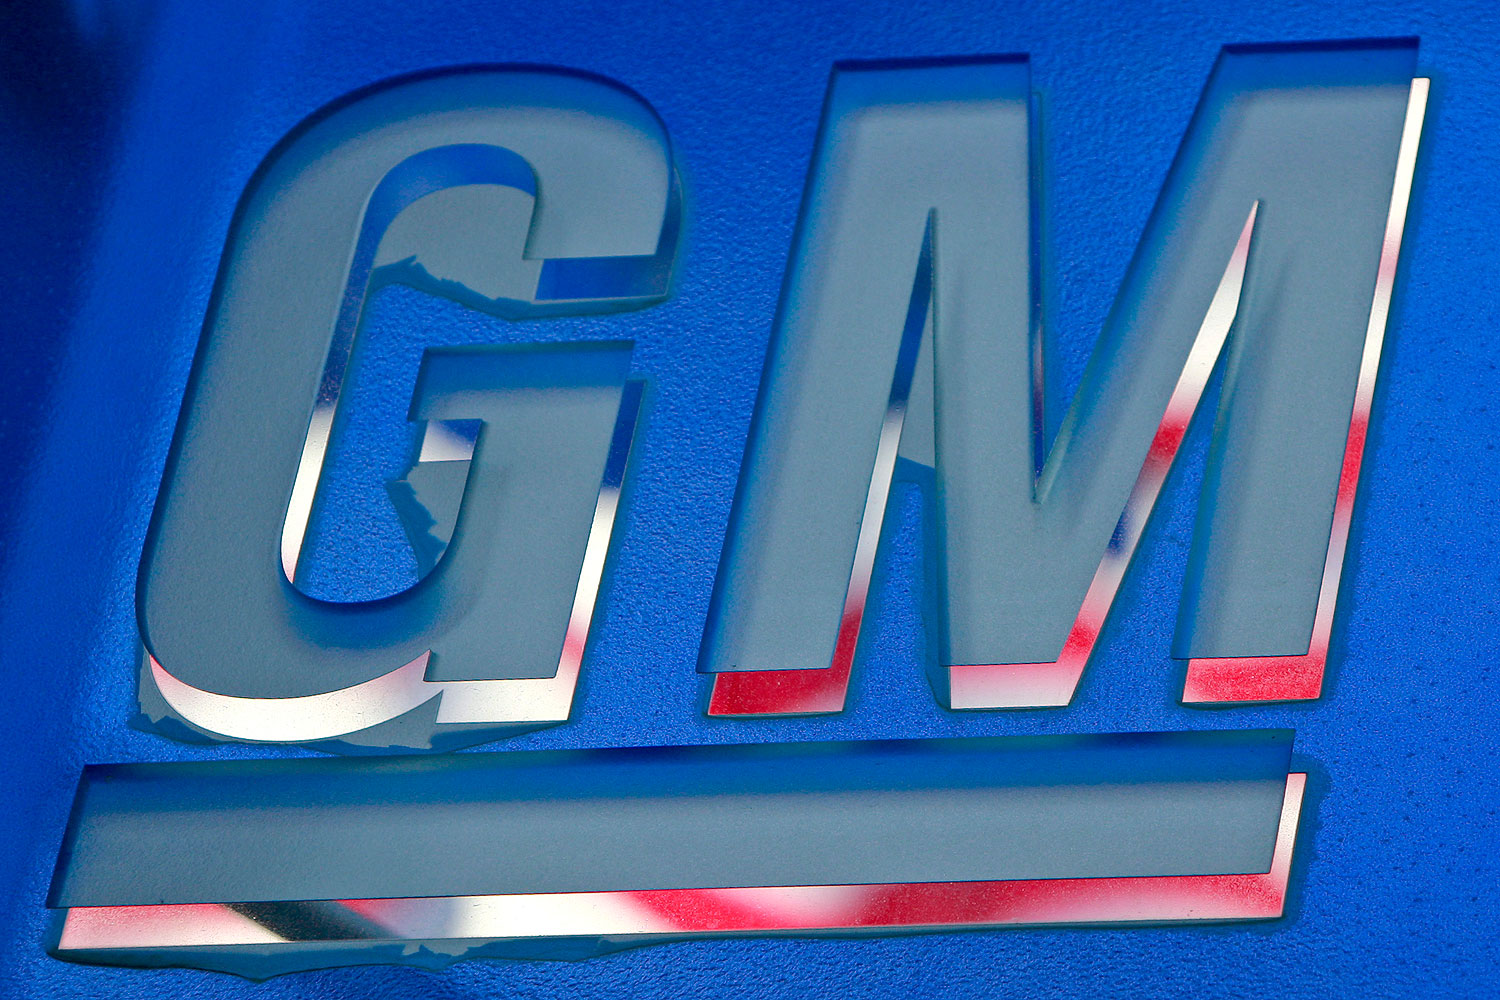 GM's innovative health care deal with Henry Ford Health